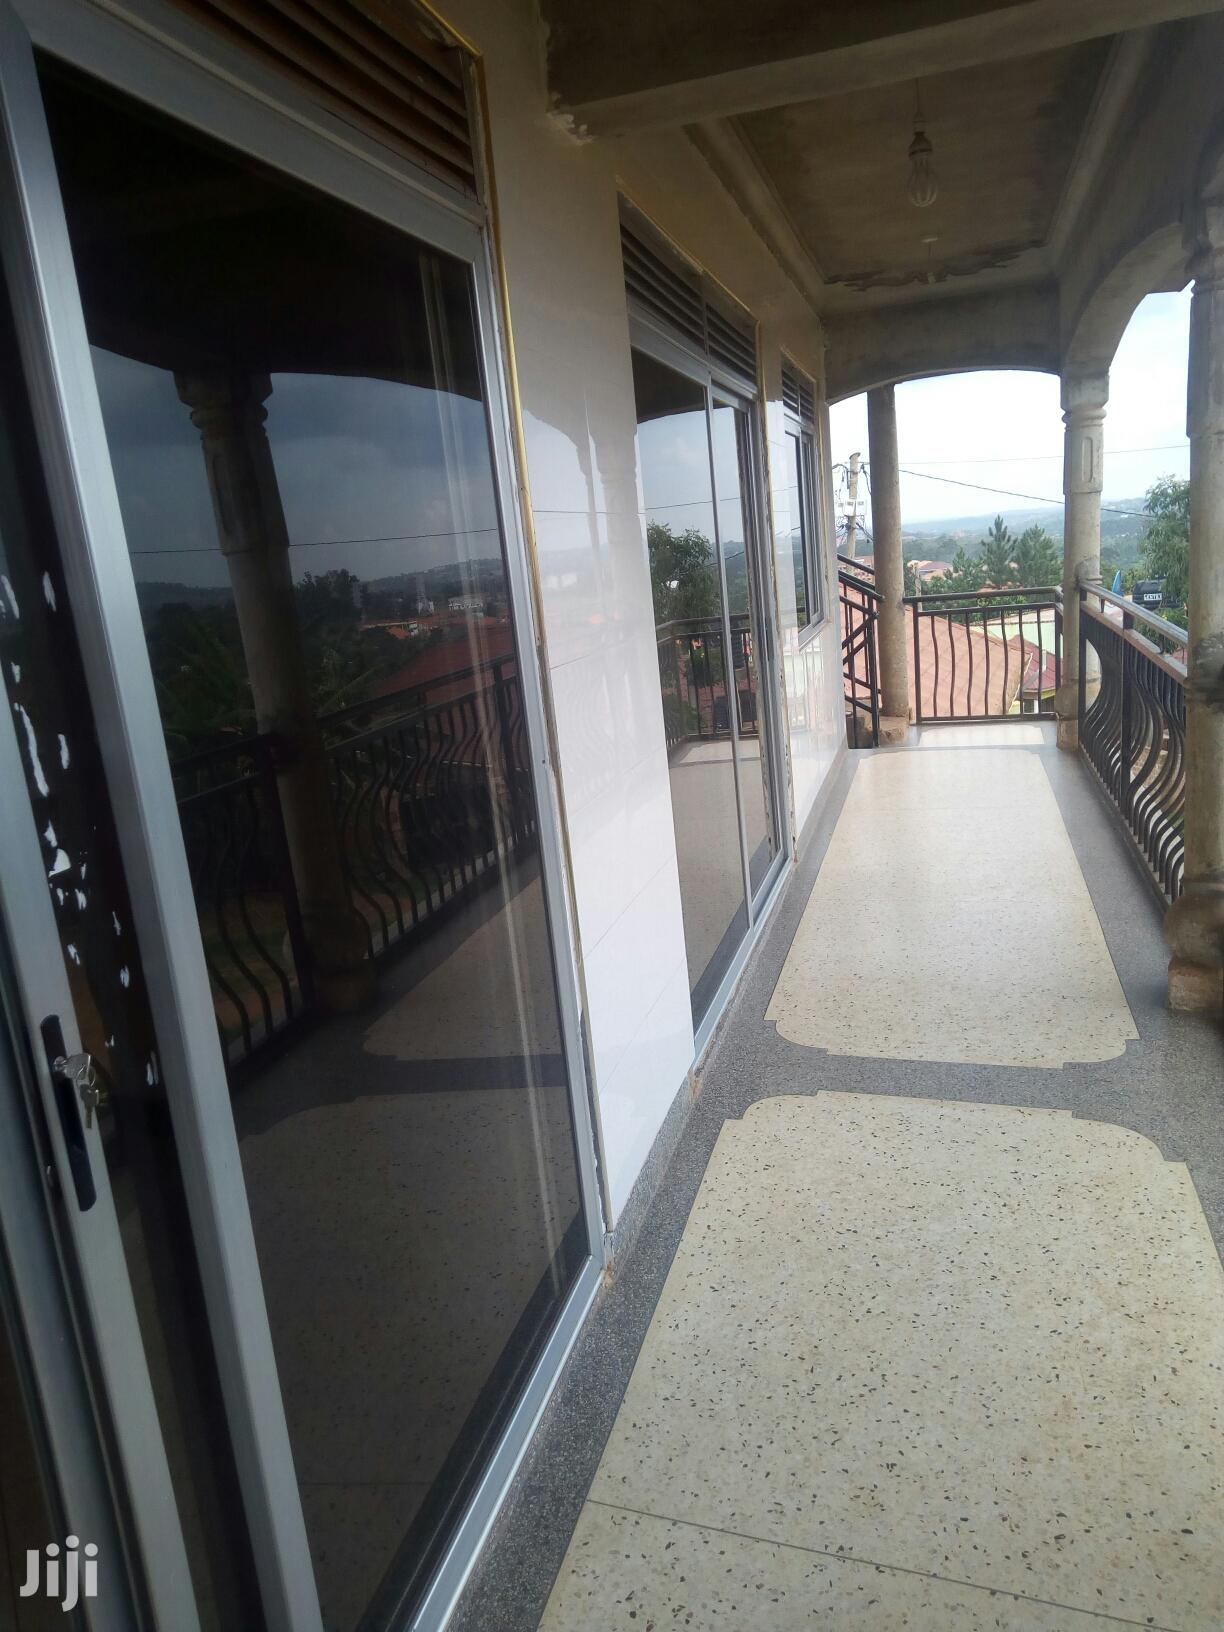 Spacious New Single Room for Rent in Bweyogerere Center.